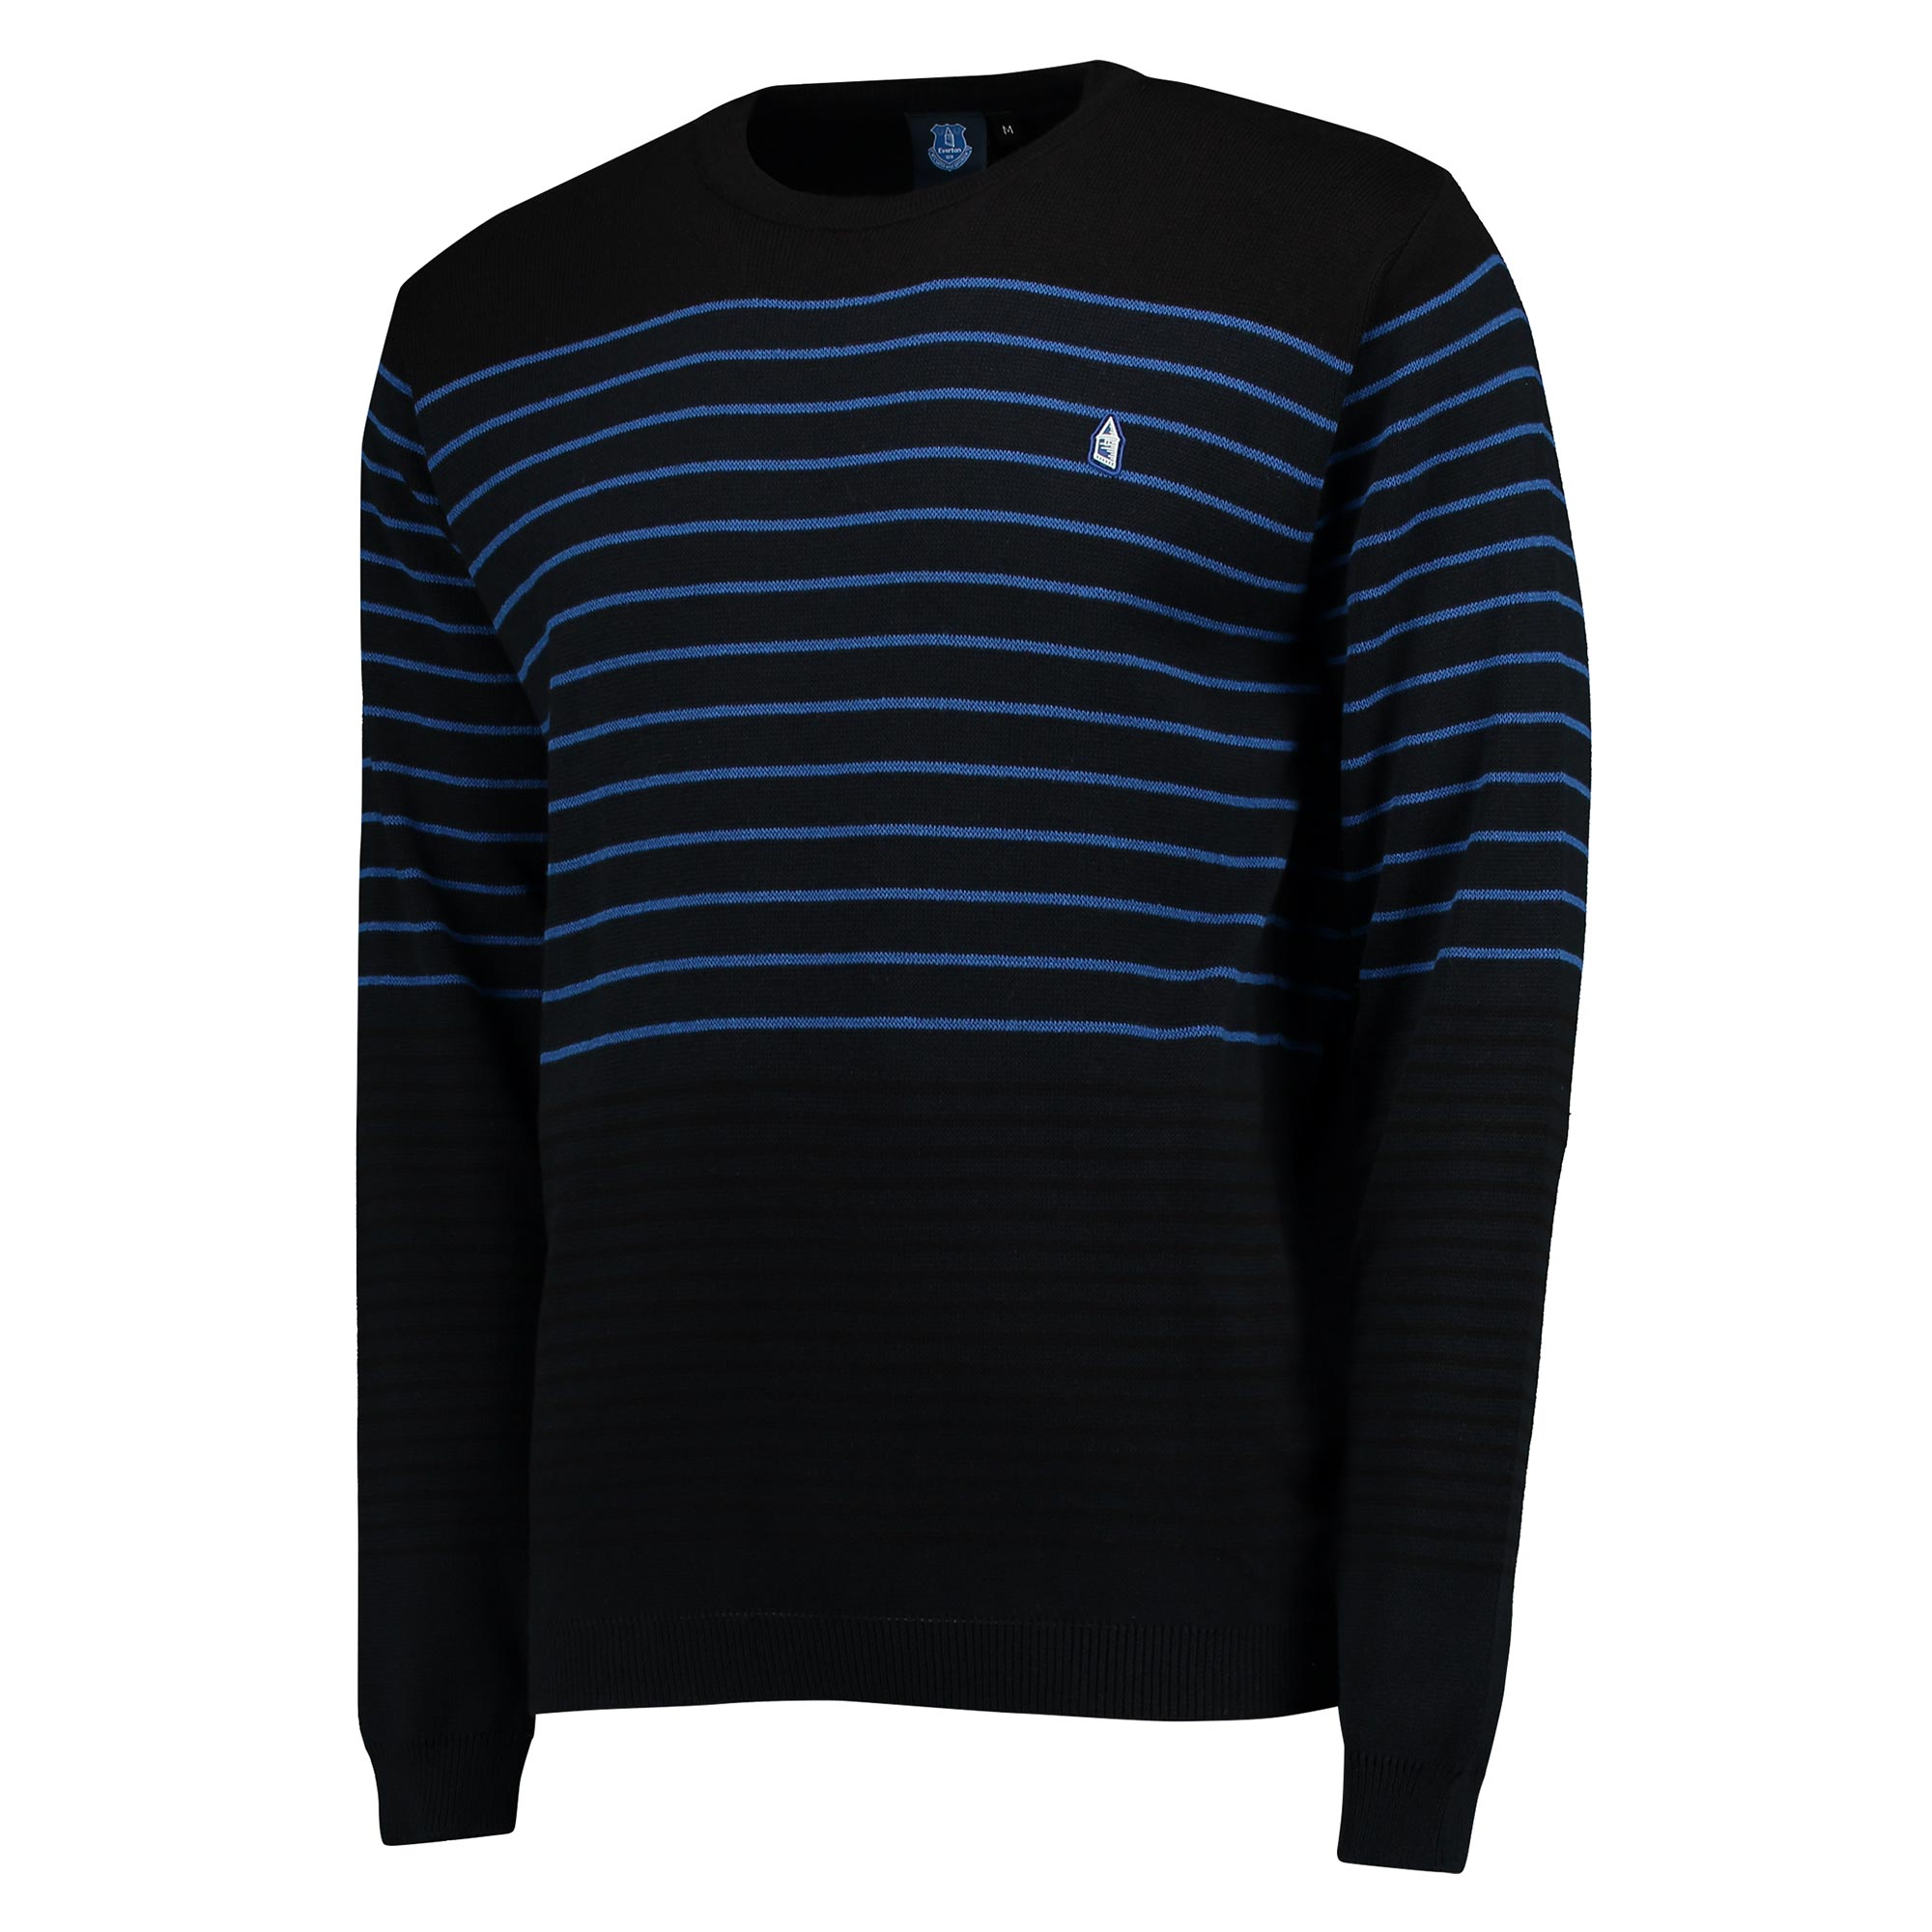 Everton Terrace Stripe Knit - Navy